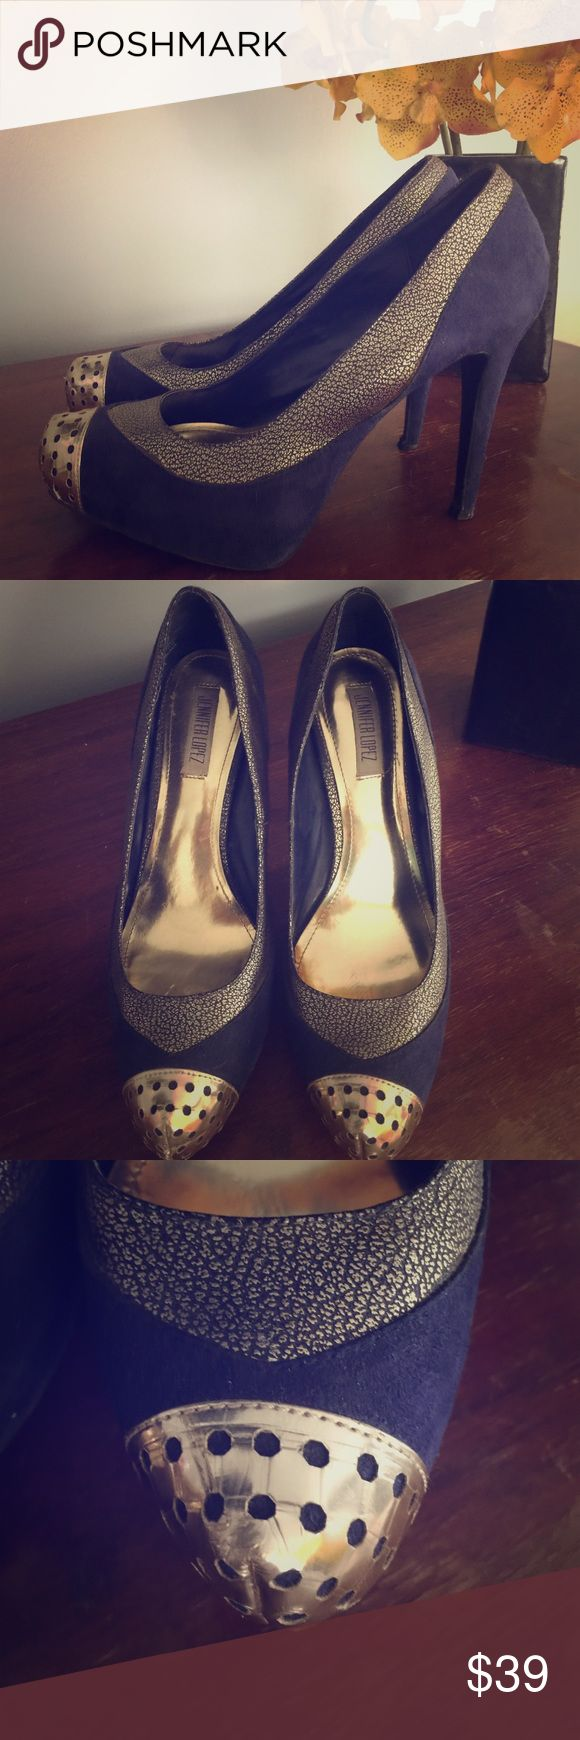 Jennifer Lopez High Heels 👠 The most amazing pair of JL shoes. Great condition but see pictures for a better view. Jennifer Lopez Shoes Heels